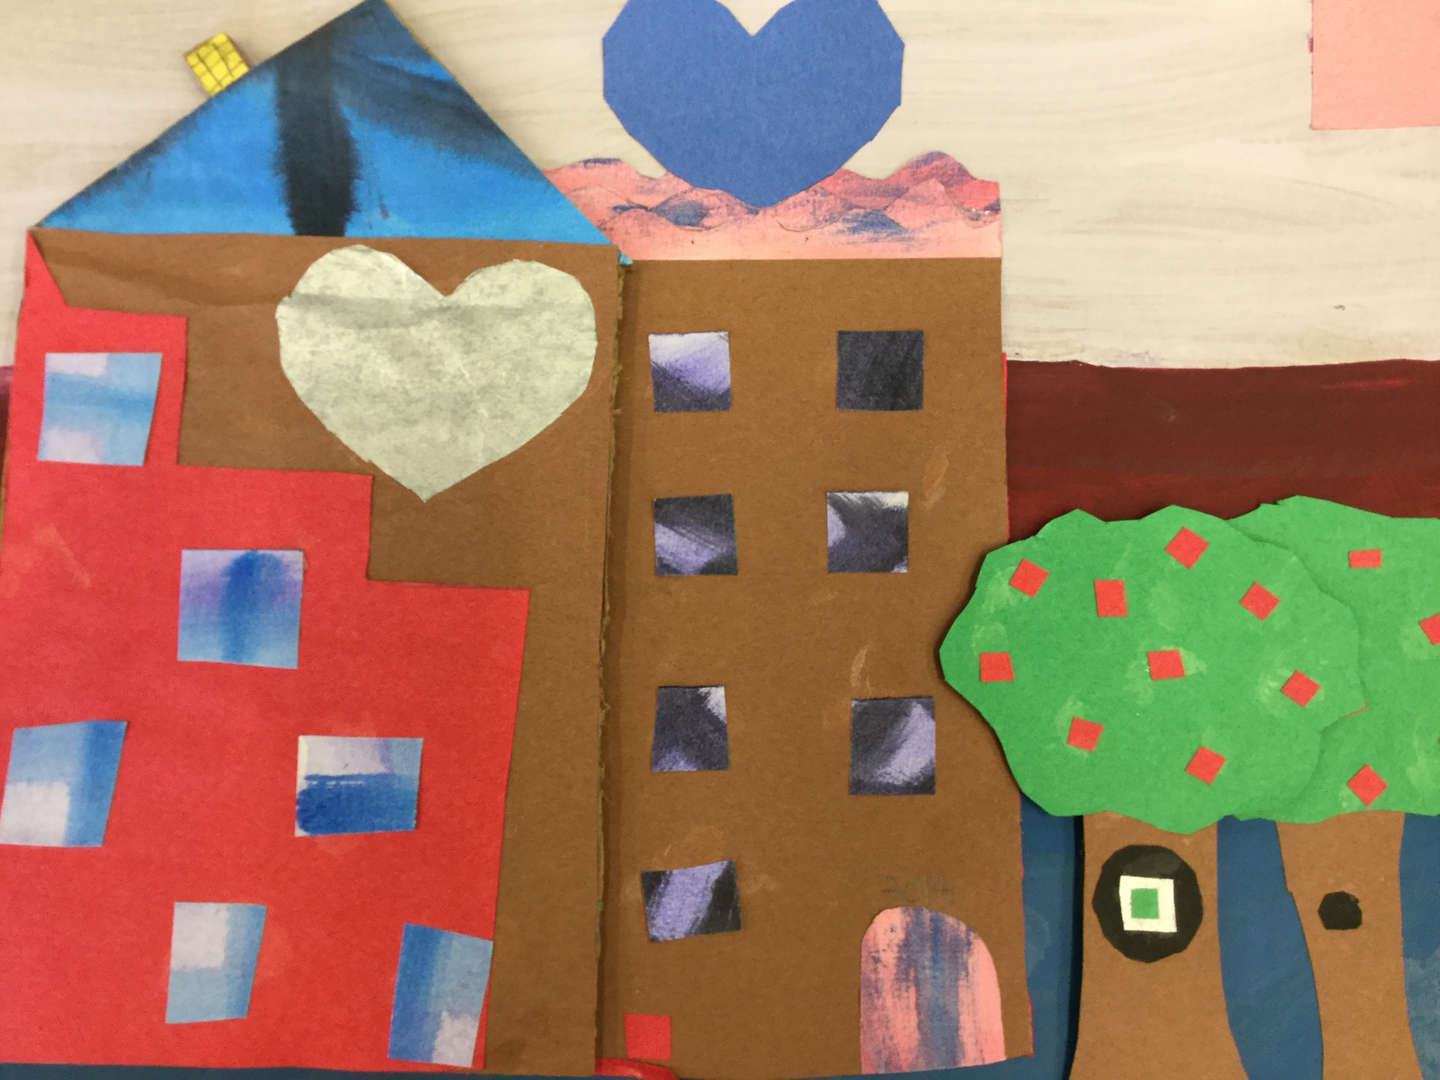 Student collage of buildings with heart